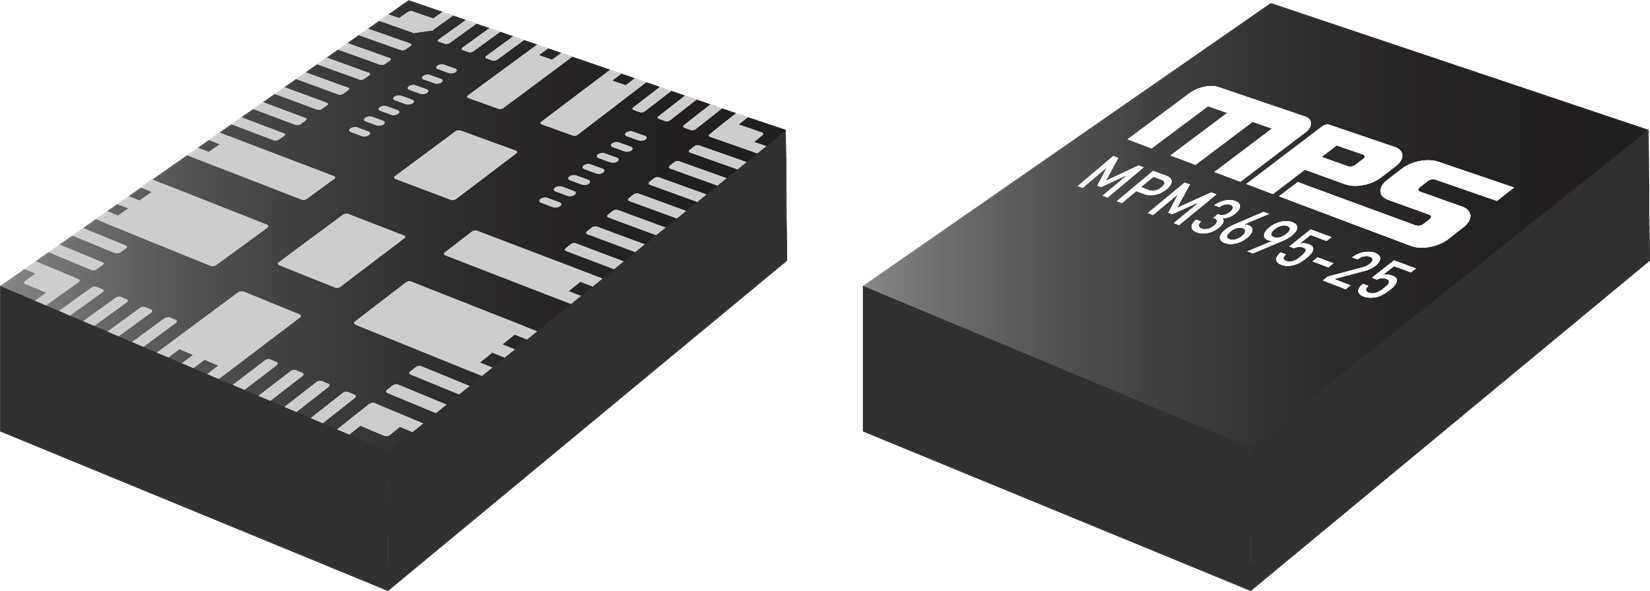 Figure 1: MPM3695-25, 25A Power Module